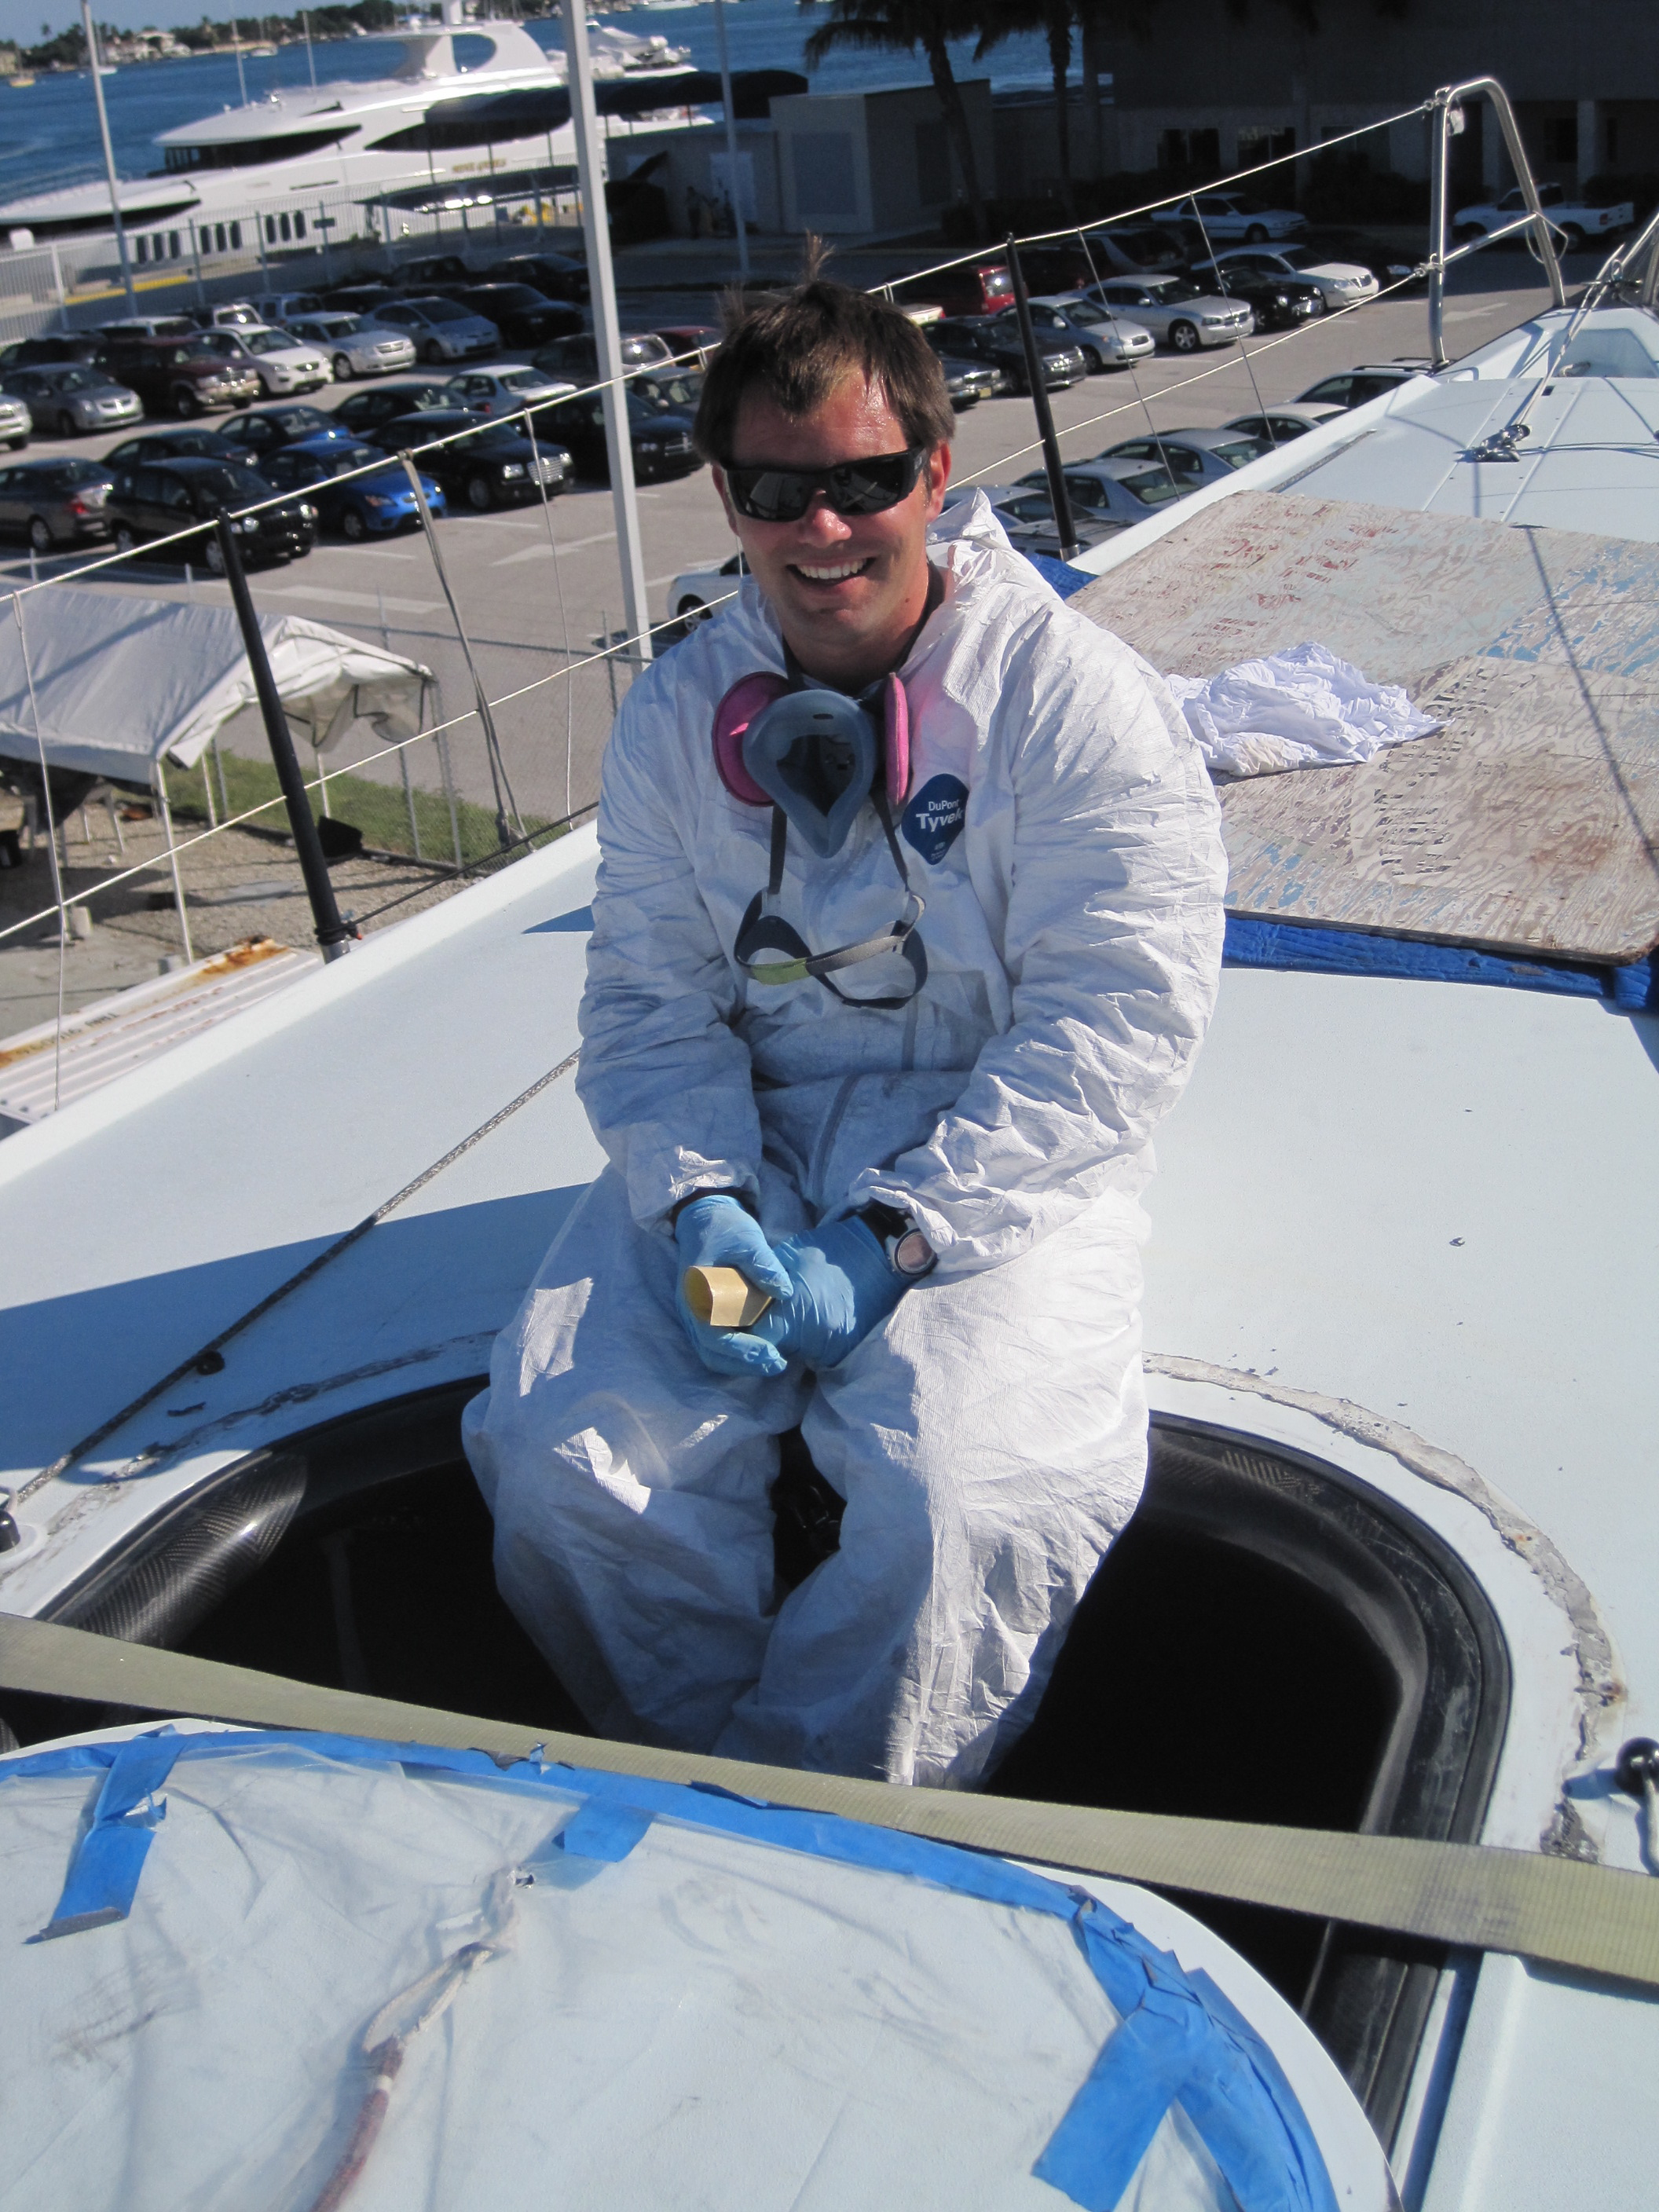 Thomas Allin smiles despite working through the heat in a Tyvek suit on a leaking hatch cover.